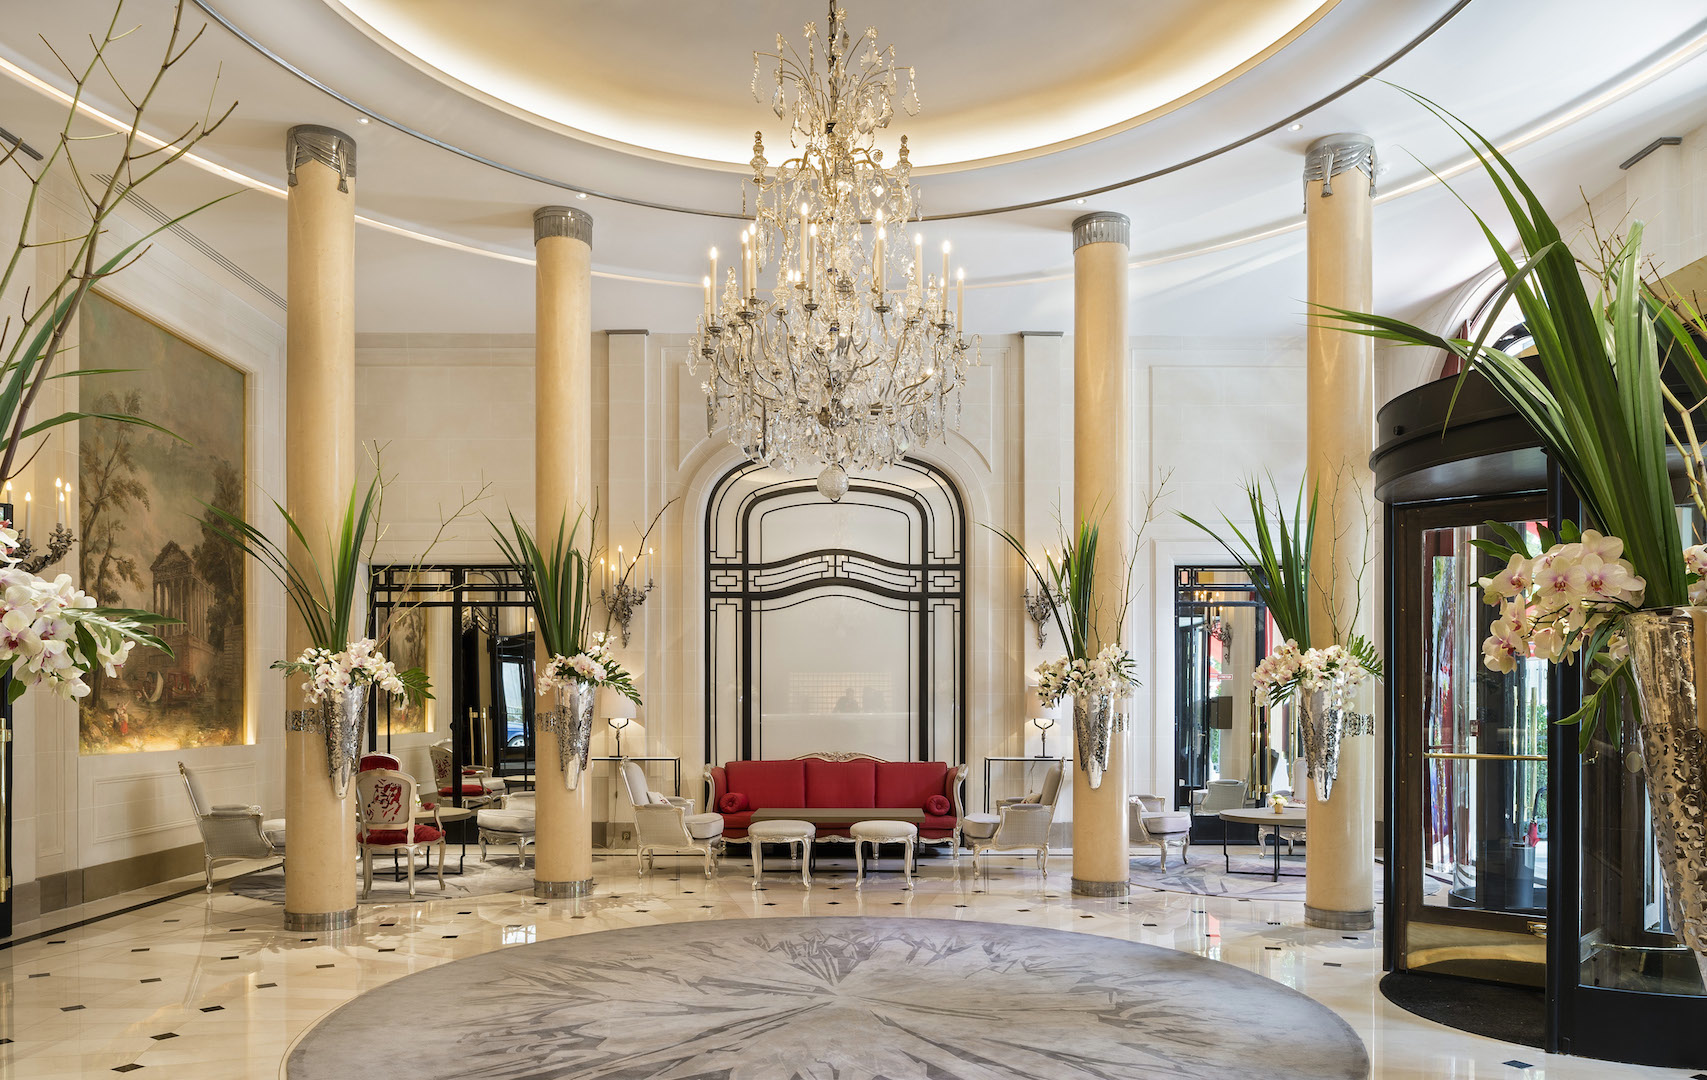 Plaza ath n e the most romantic hotel in parisfashionela for Hotel design original paris